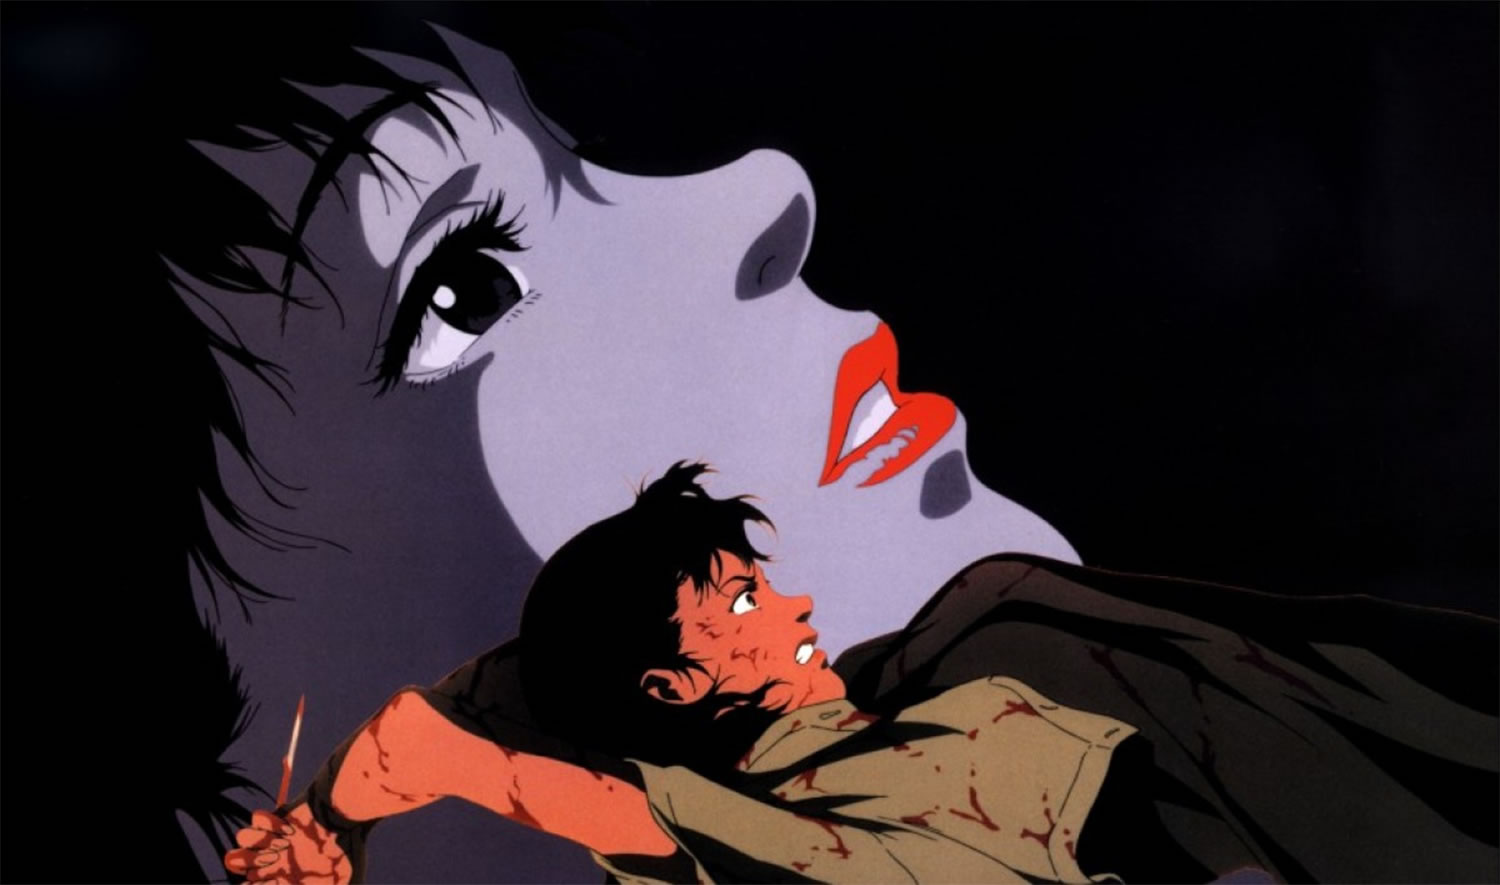 murderer with knife, anime, stalked women in perfect blue